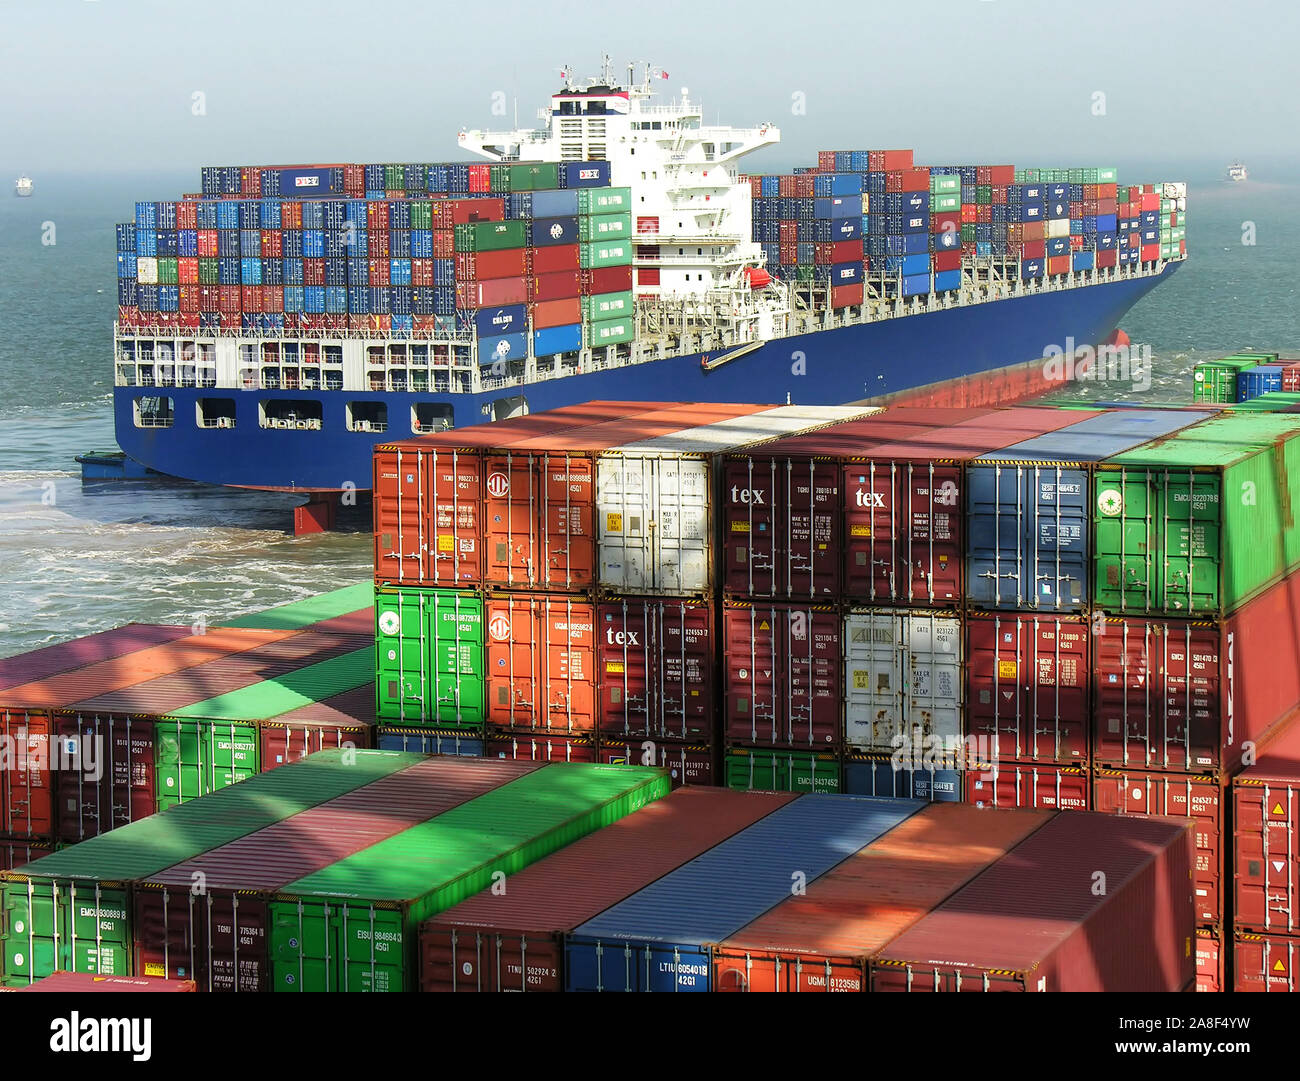 Containerhafen in Asien, China, Shanghai, Containerschiff, Container, Stock Photo